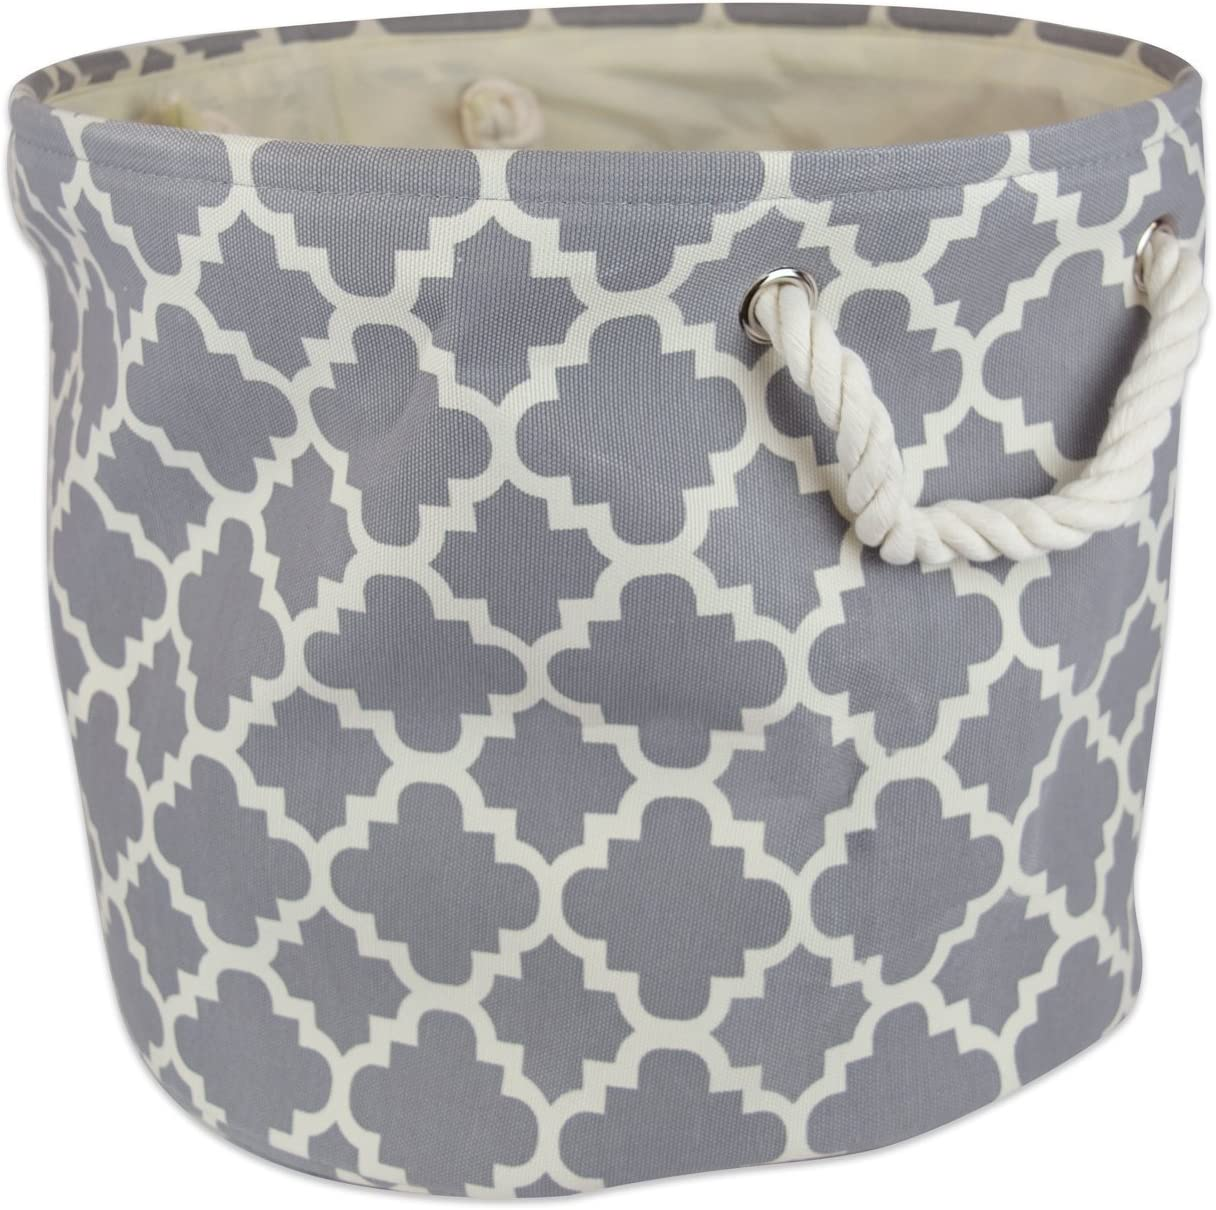 """DII Collapsible Polyester Storage Basket or Bin with Durable Cotton Handles, Home Organizer Solution for Office, Bedroom, Closet, Toys, Laundry (Large Round – 15x16""""), Gray Lattice"""